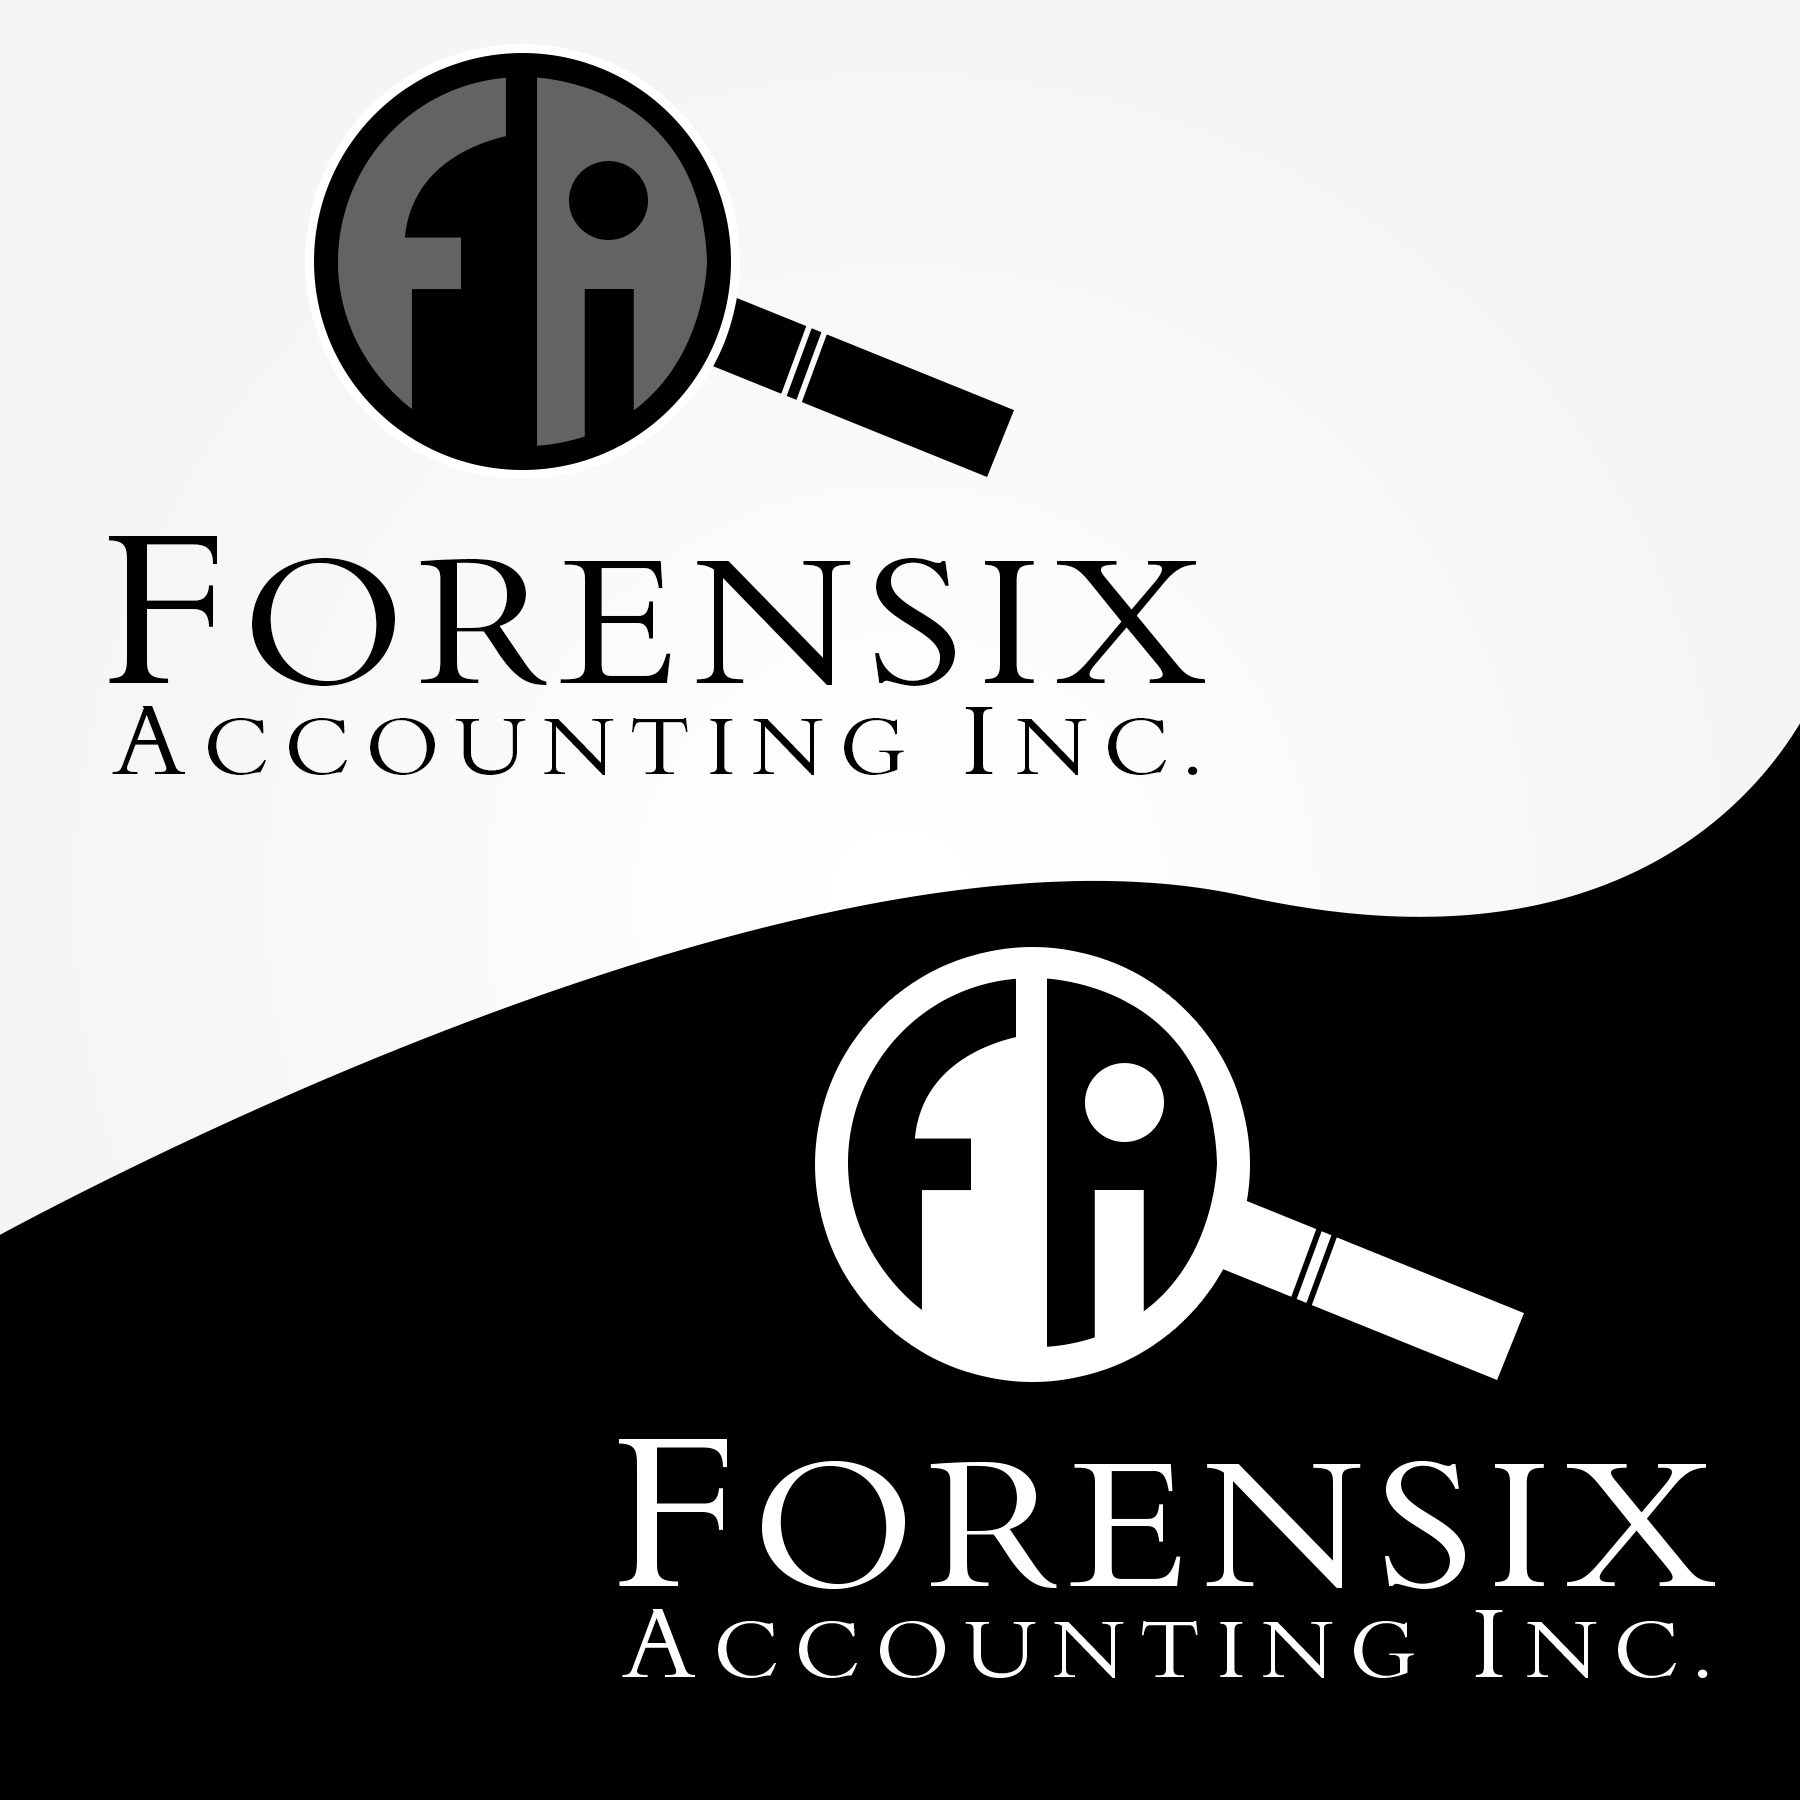 Logo Design by Lemuel Arvin Tanzo - Entry No. 32 in the Logo Design Contest FORENSIX ACCOUNTING INC. Logo Design.